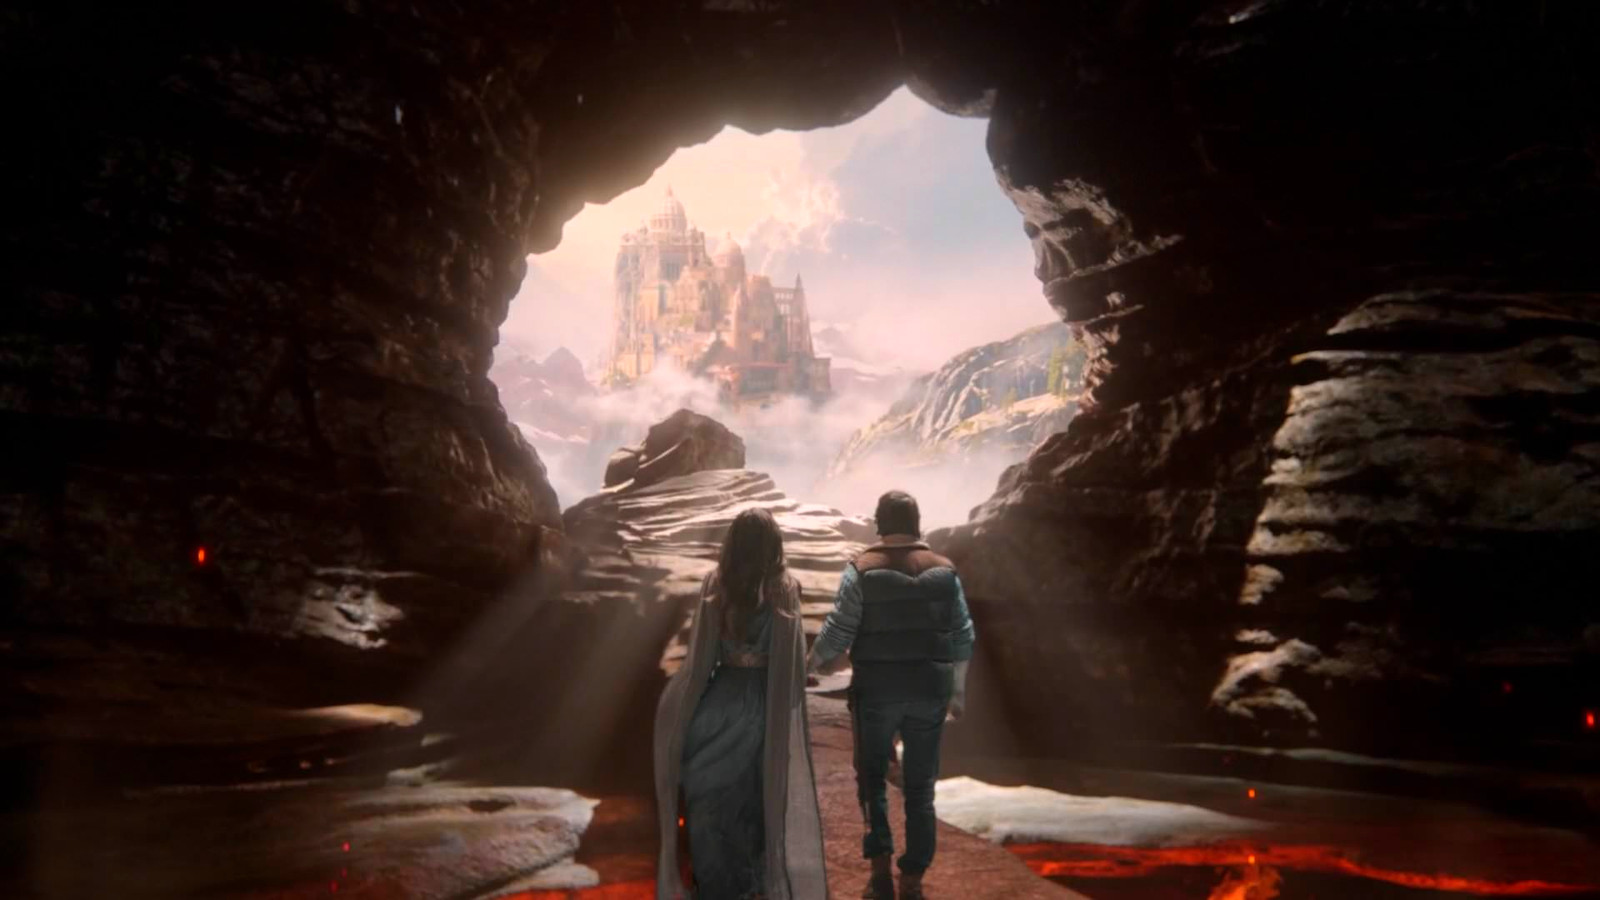 Mount Olympus - Once Upon  a Time Season 5 - ZOIC Studios Final Shots